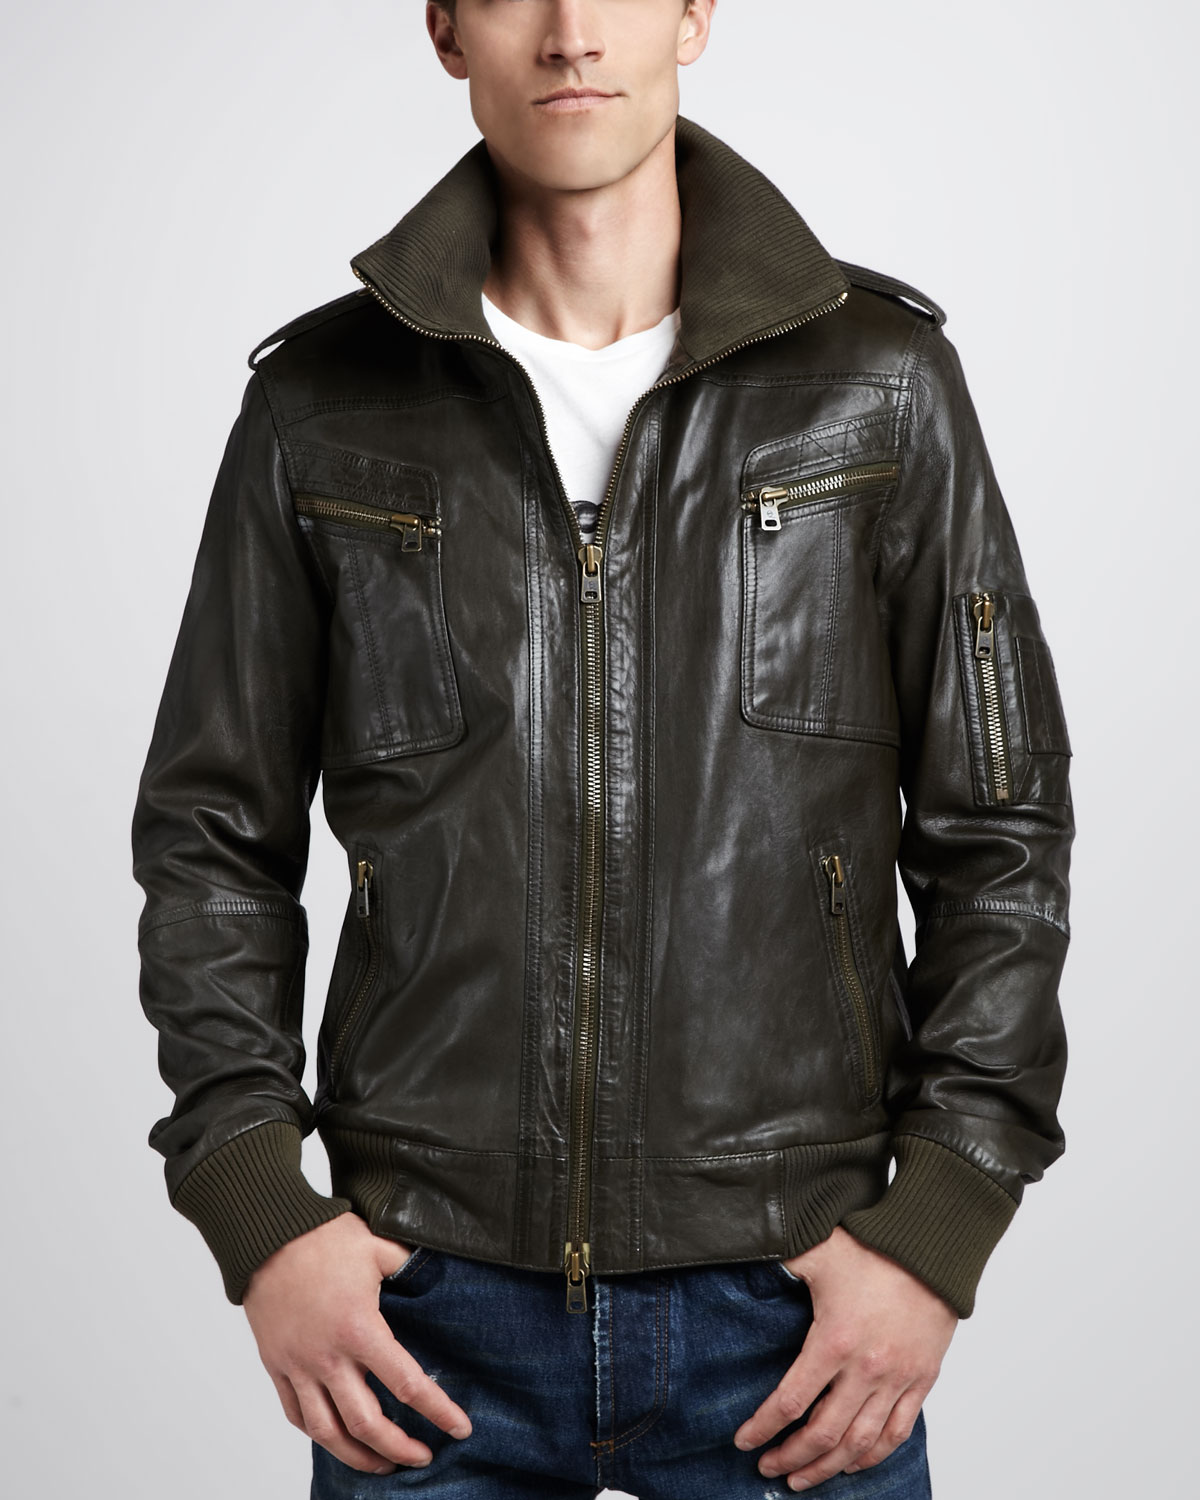 Mcq Leather Bomber Jacket in Green for Men | Lyst